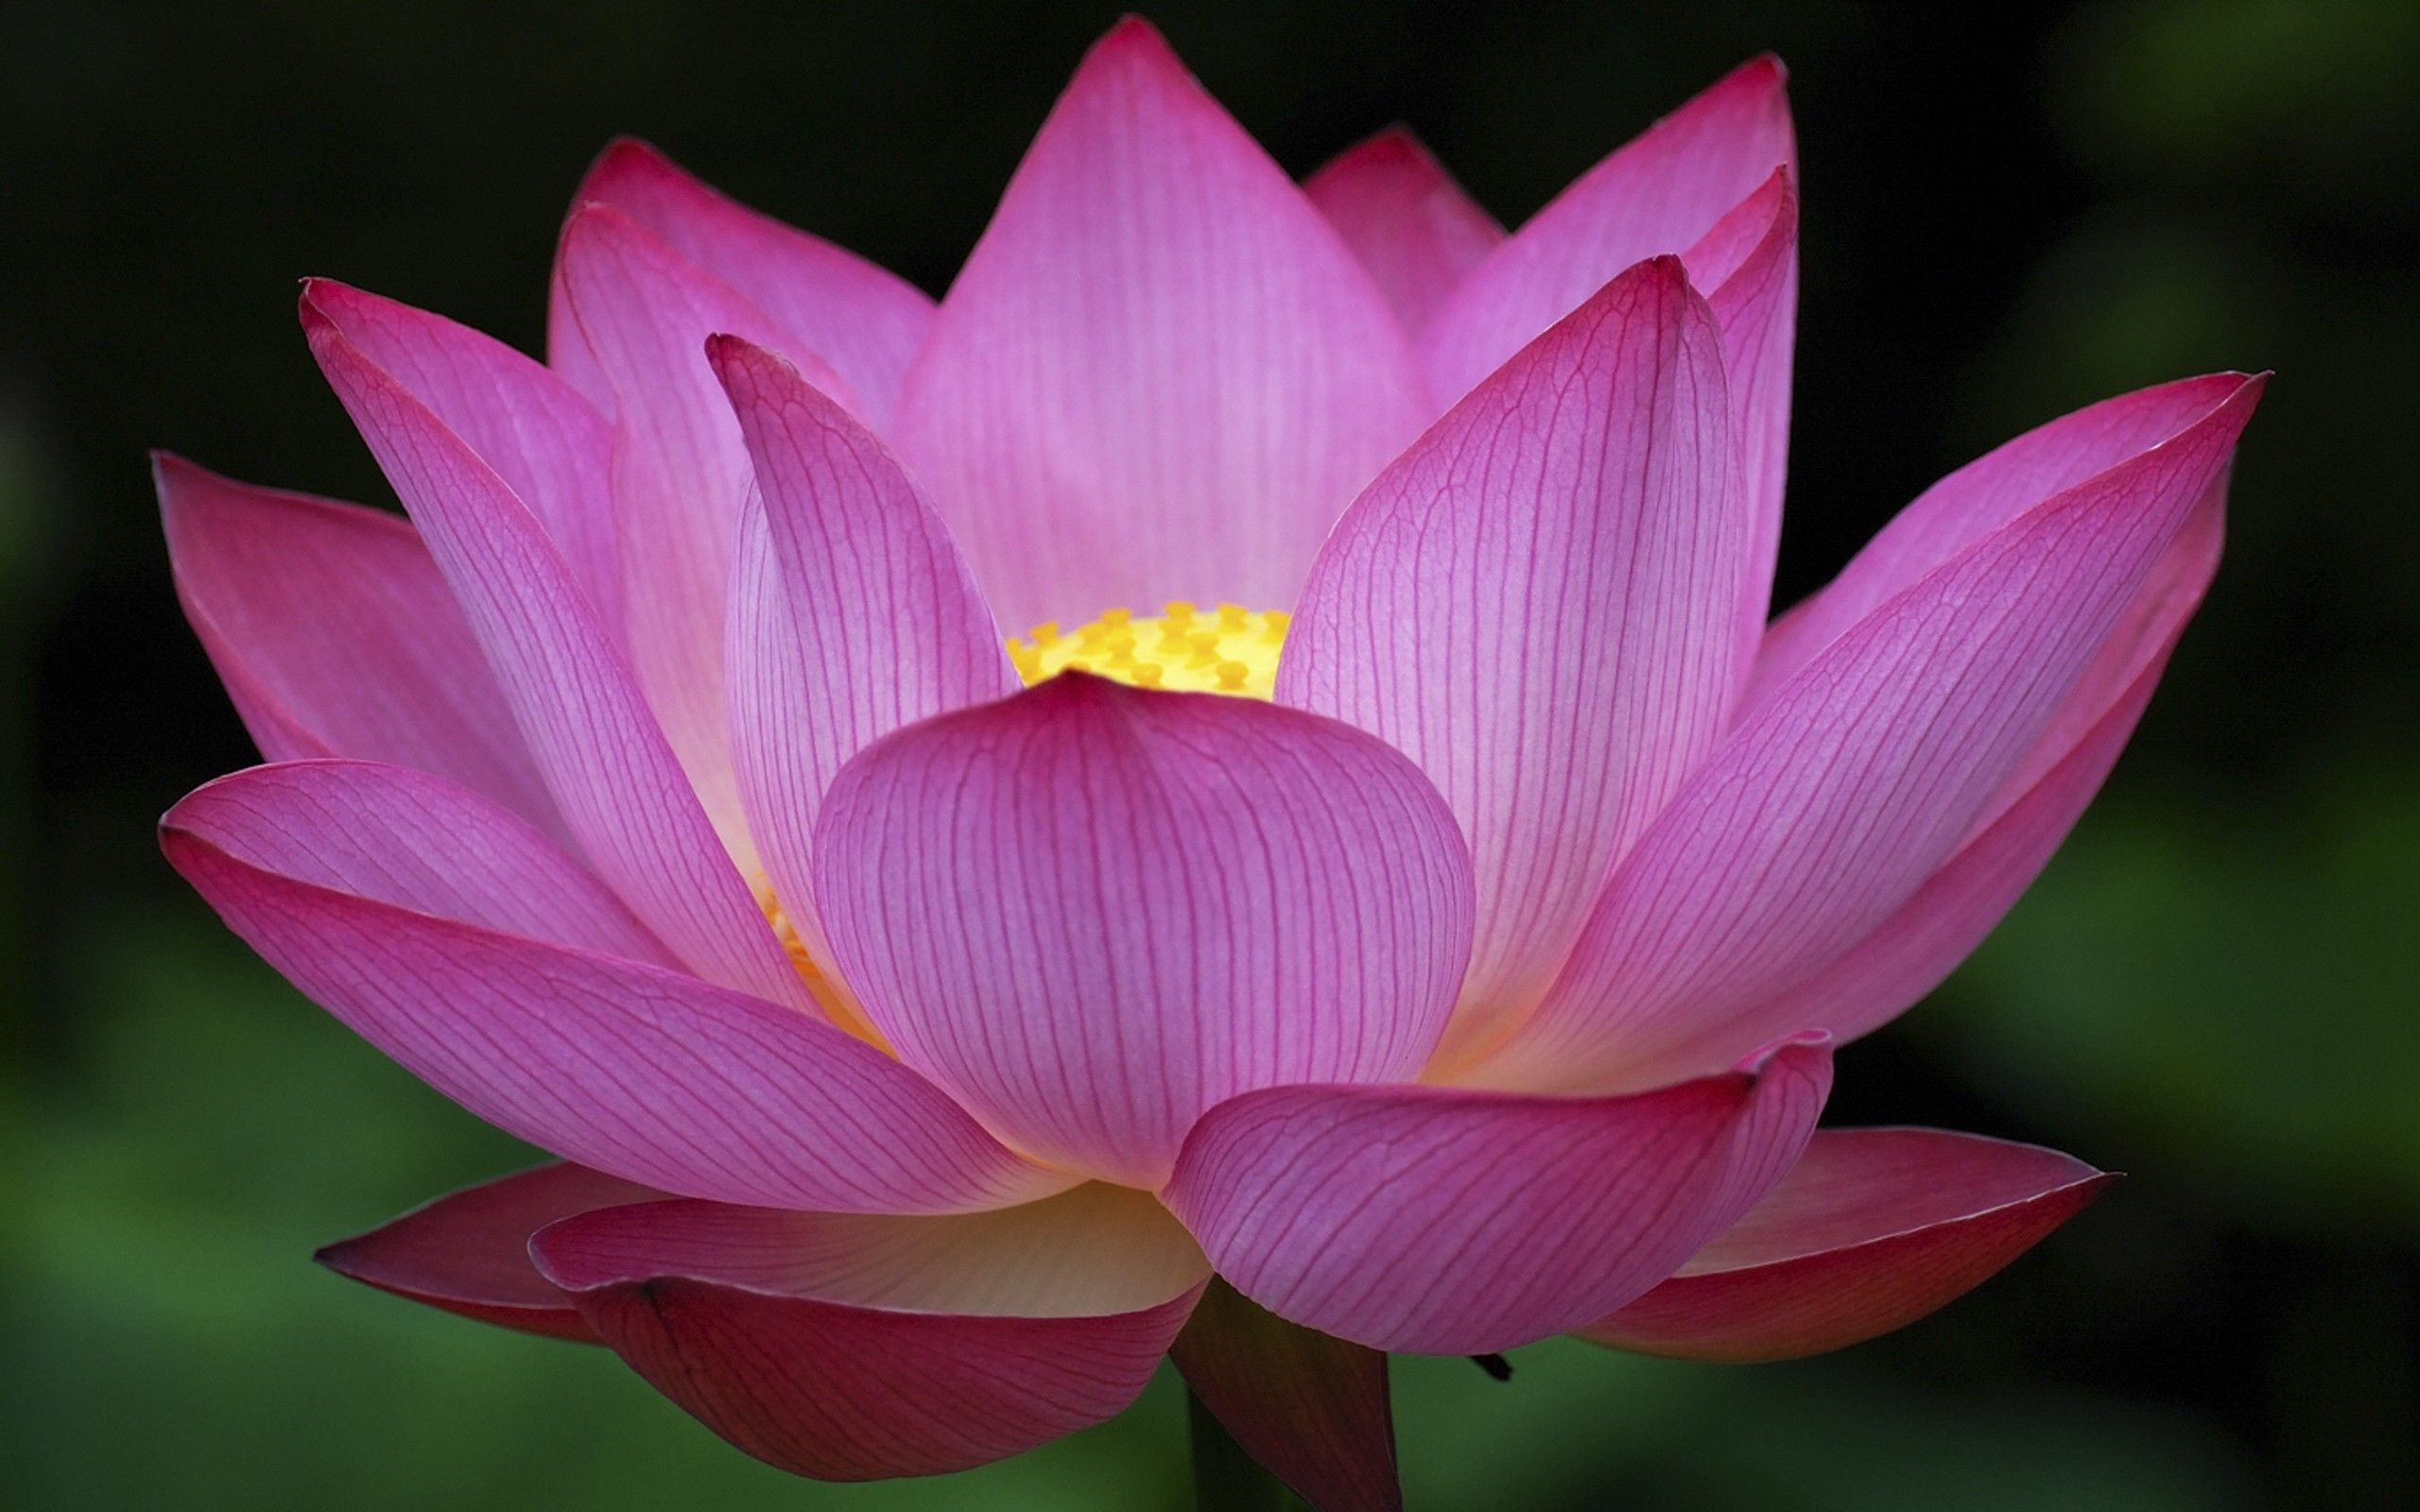 Lotus HD Wallpaper (73+ images)